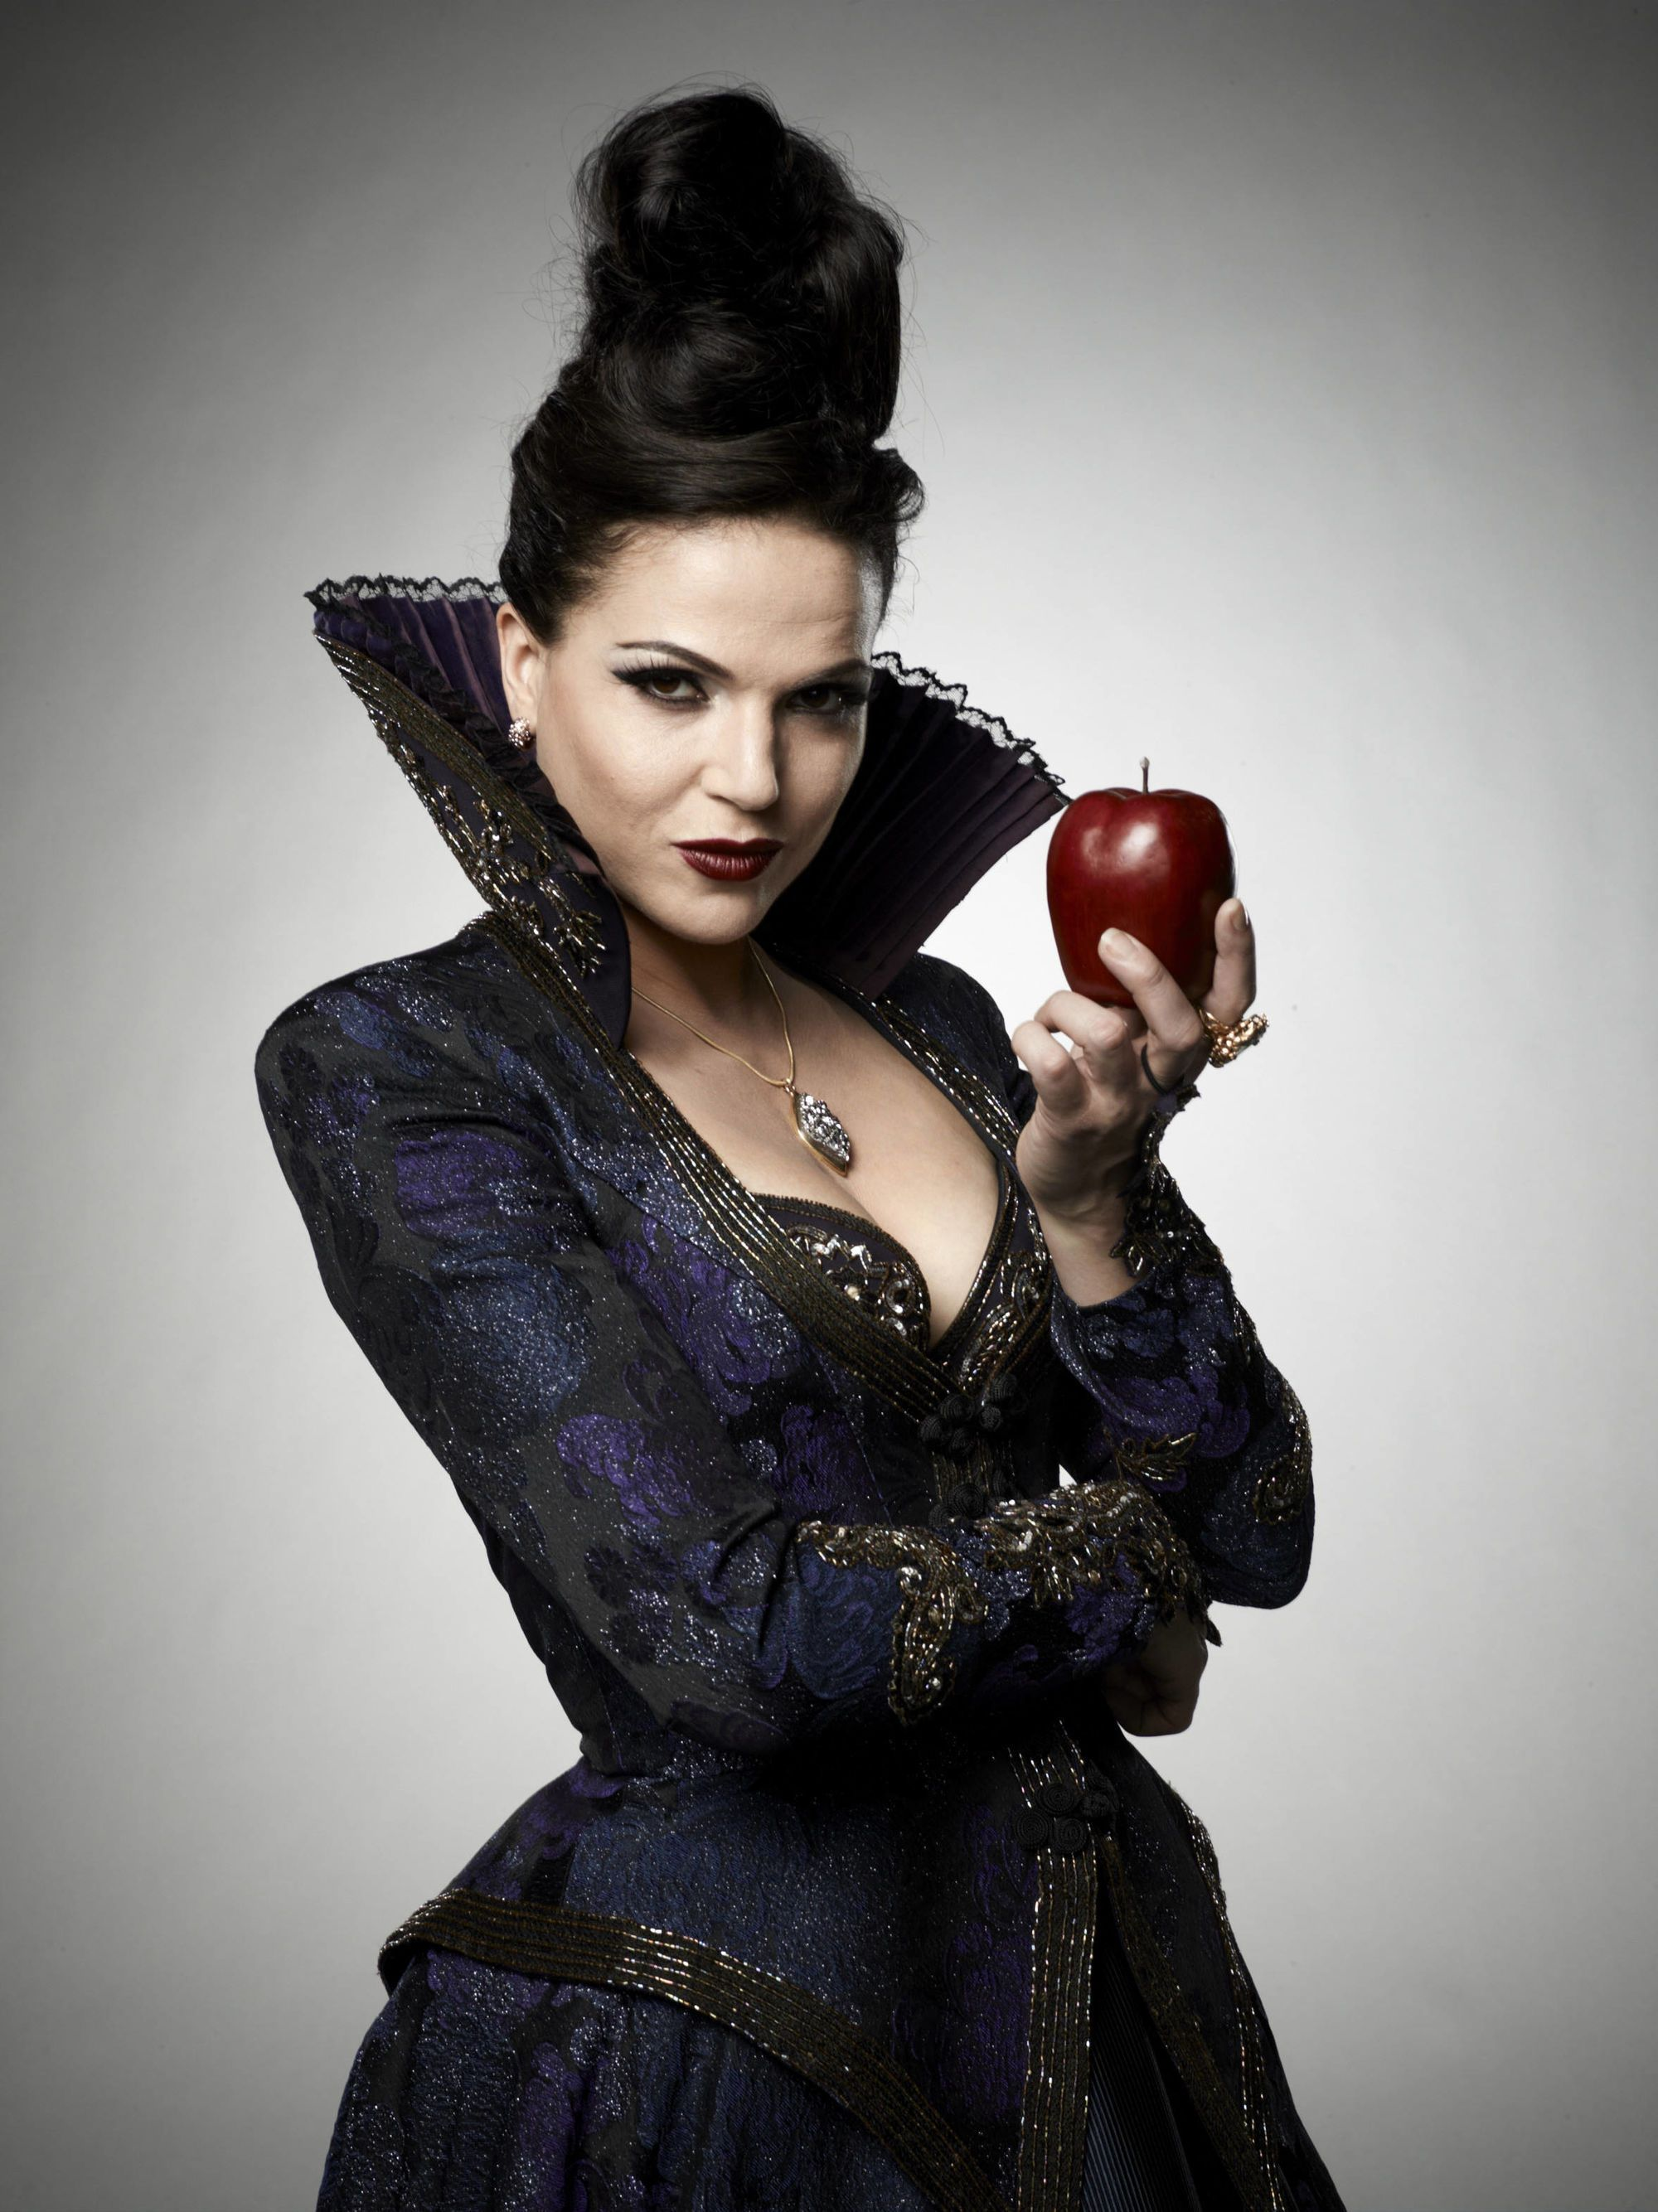 Pin by Lika Seiker on Once up a time in 2020 Evil queen